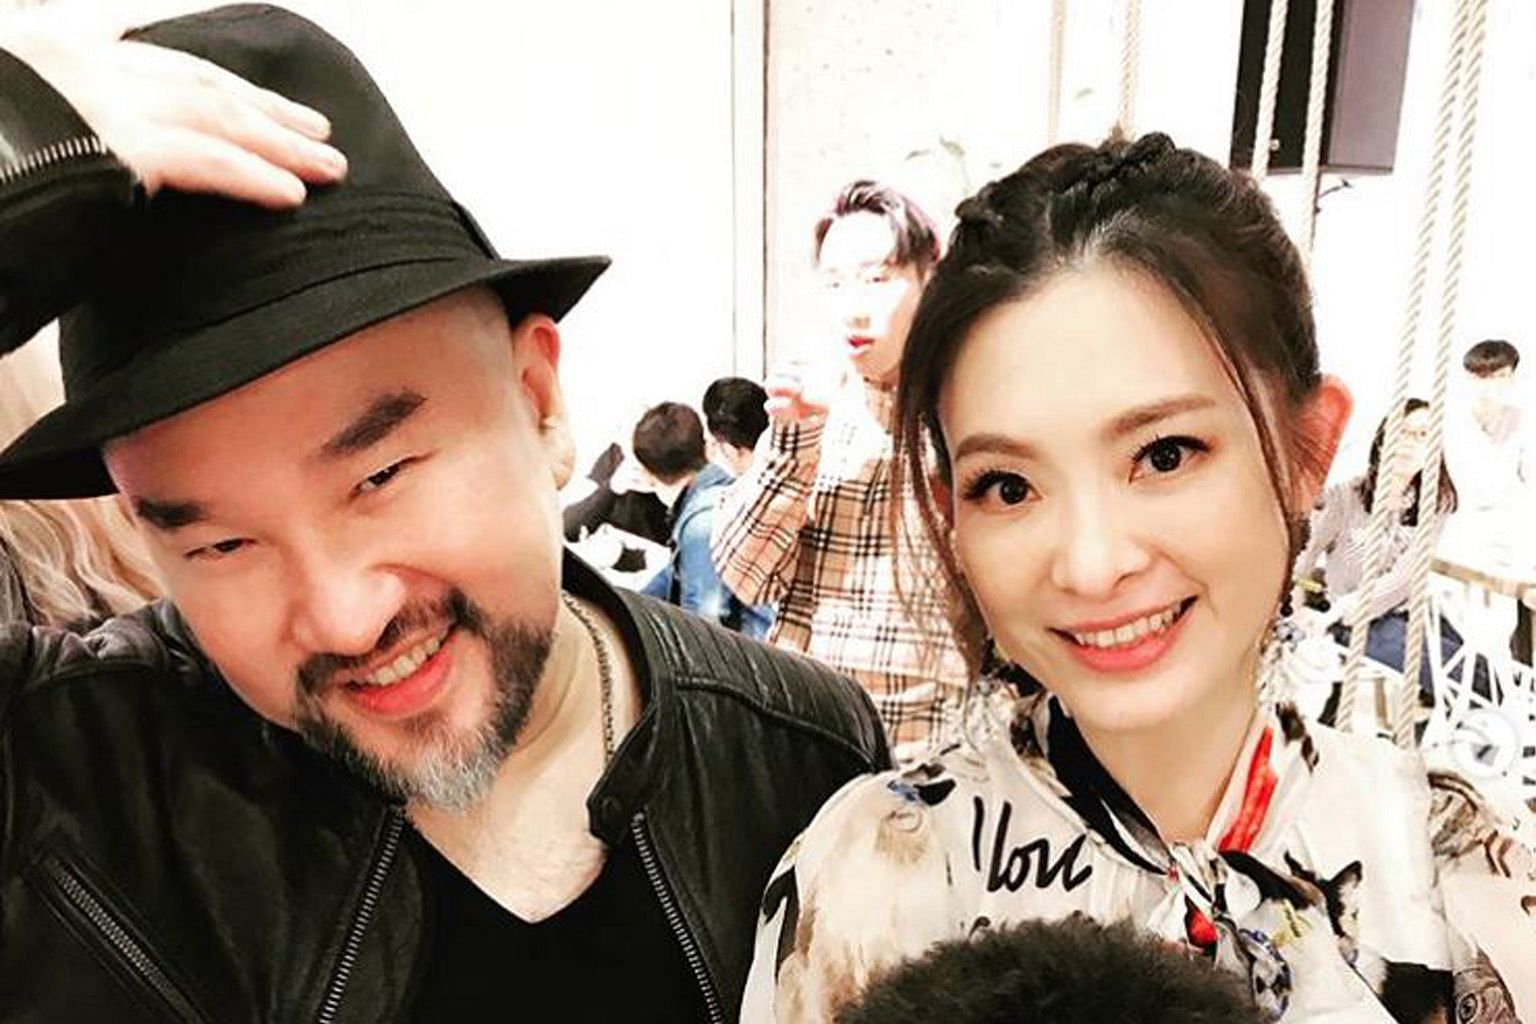 Serena Liu Chen (seen here with her husband Shin Lung) was taken off life support.